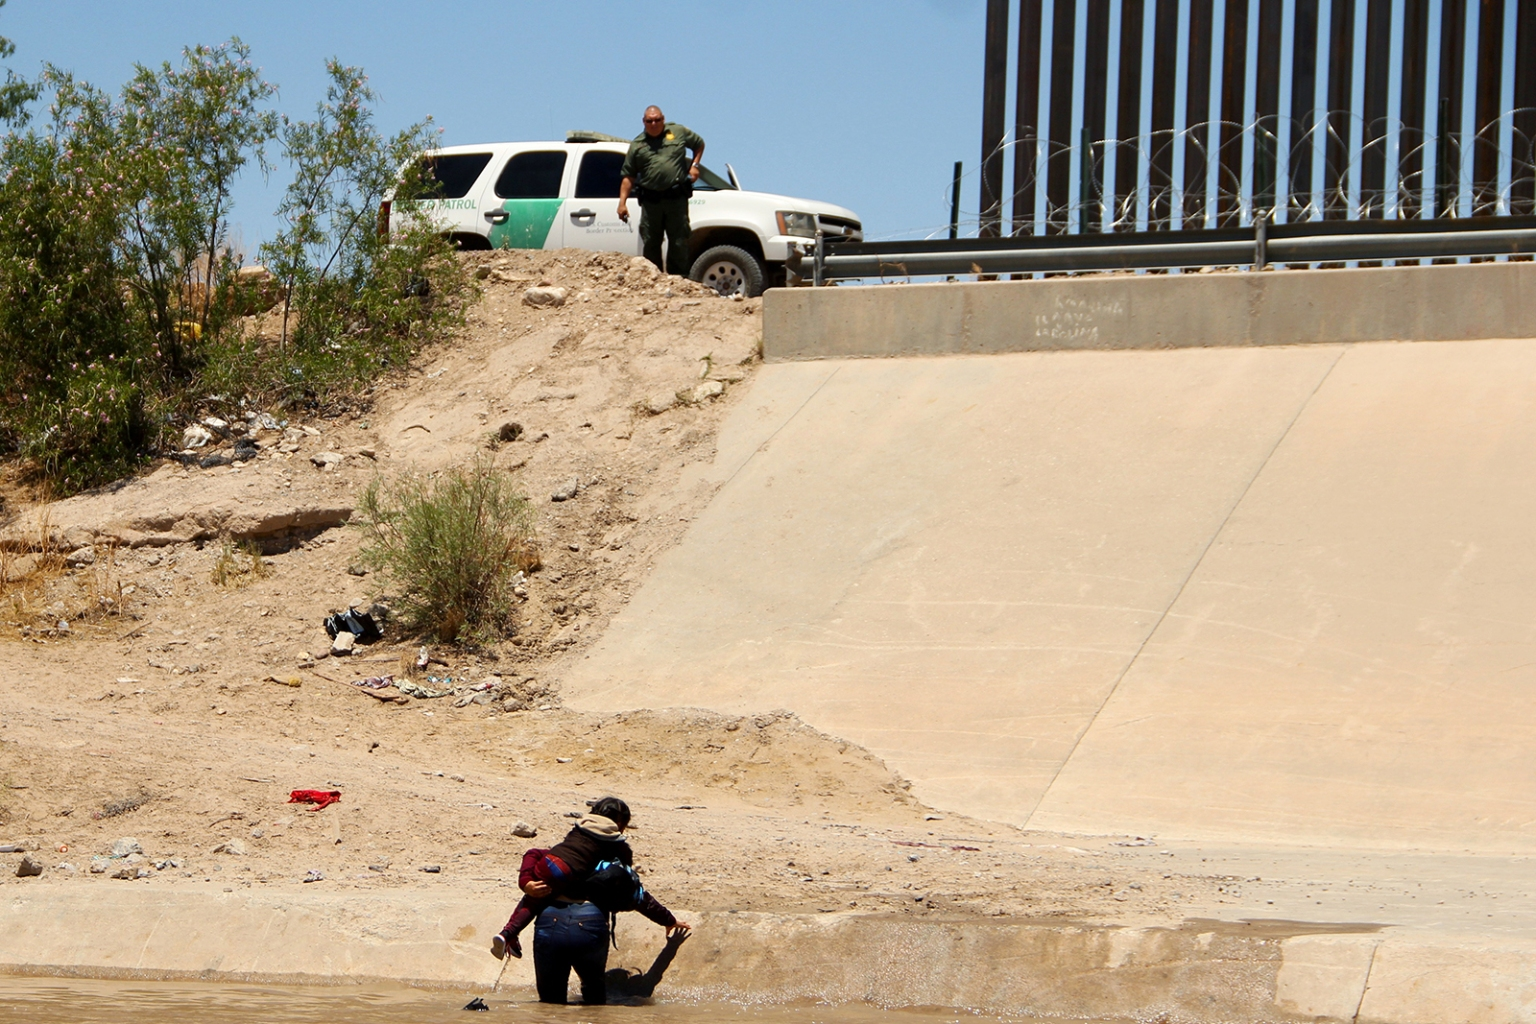 A Central American migrant carries a girl across the Rio Grande in Ciudad Juarez, Mexico, on June 12, before turning themselves into U.S. Border Patrol agents to claim asylum. HERIKA MARTINEZ/AFP/Getty Images